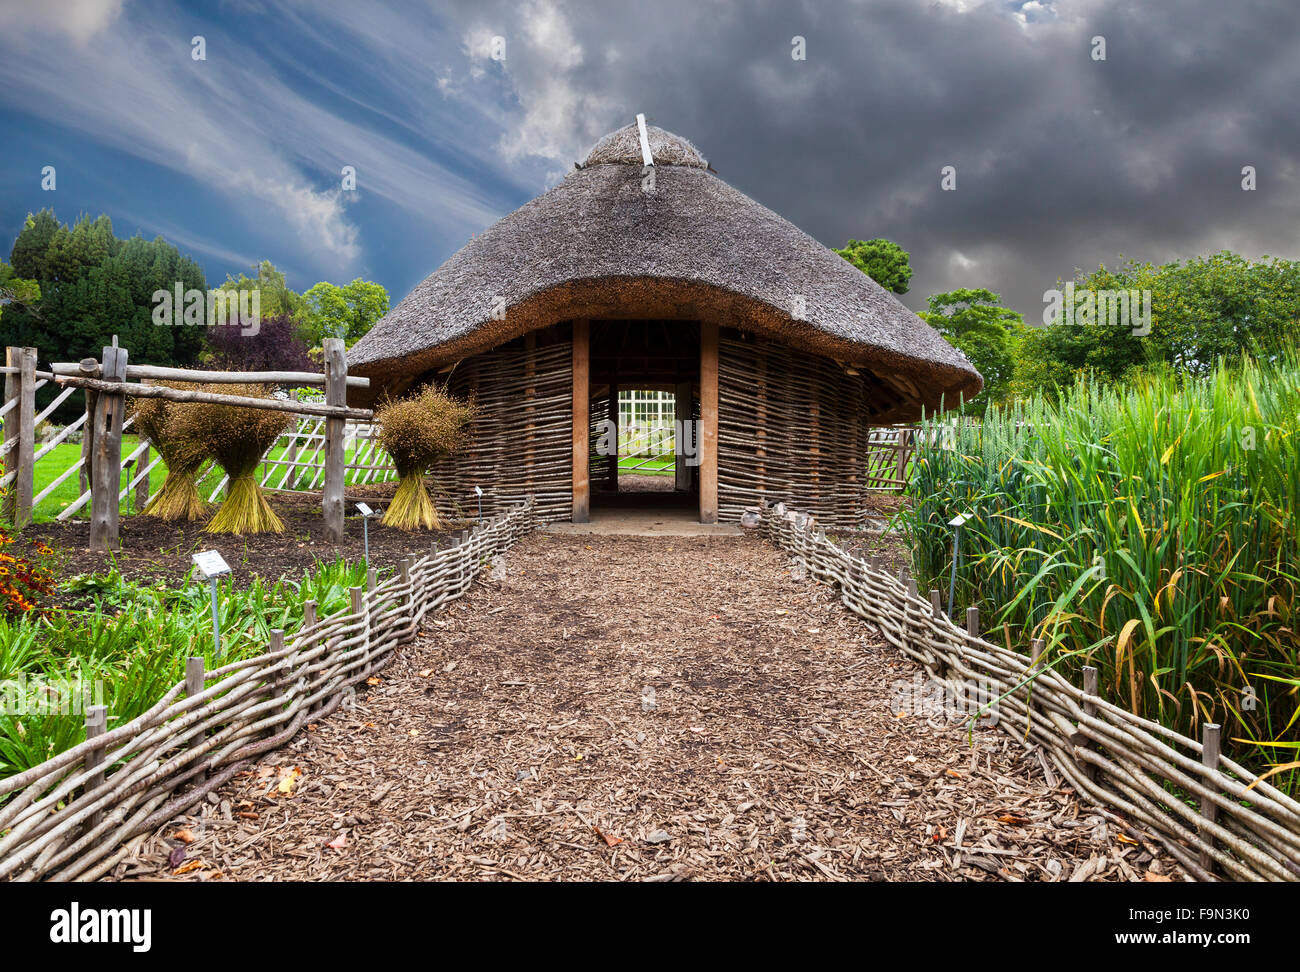 Exceptional Replica 11th Century Viking House In The Dublin National Botanic Gardens,  Glasnevin Ireland.